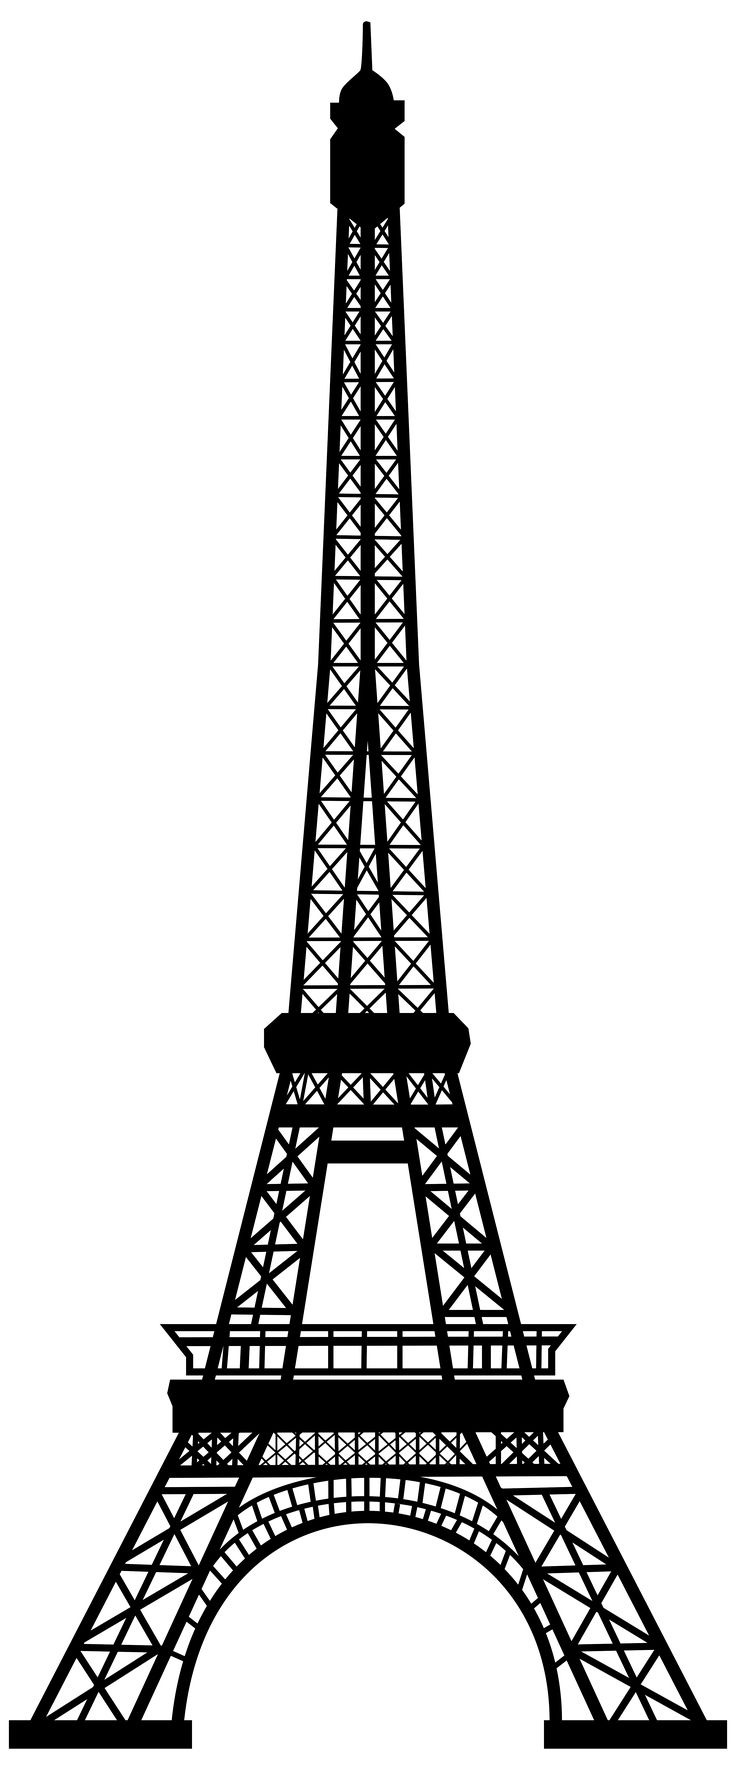 eiffel tower printable cn tower drawing at getdrawings free download eiffel printable tower